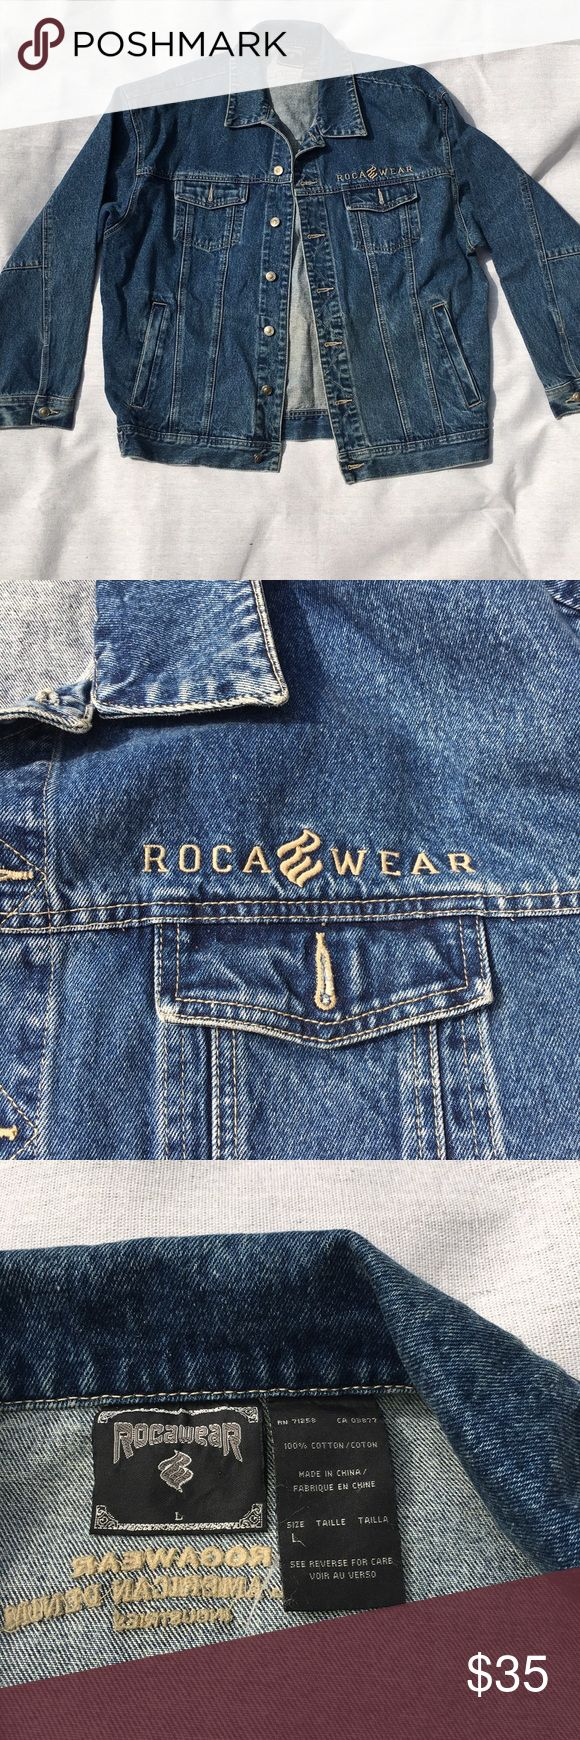 Vintage Rocawear Spell Out Denim Jacket Jacket is in Excellent condition no issues whatsoever ever! Rocawear is spelled out on the front and the back very cool Denim jacket for any occasion!    #denim #Denimjacket #vtg #vintage #vintagedenim #vintagejacket #jacket #rocawear #hiphop #hype #style #mens Rocawear Jackets & Coats